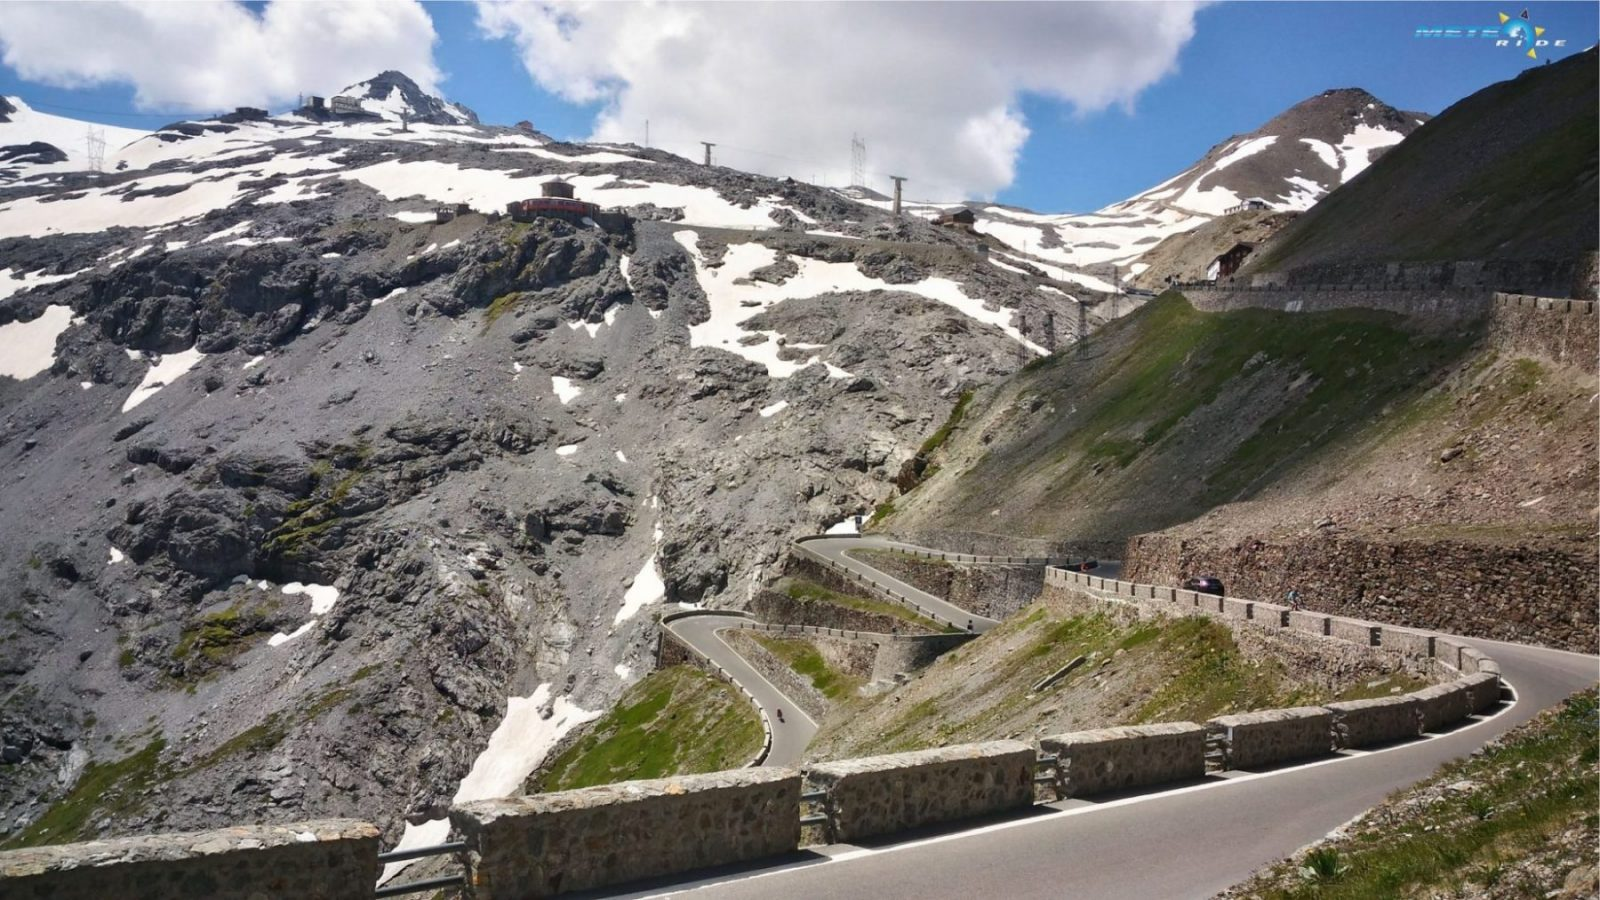 Stelvio pass Meteo-Ride.com8